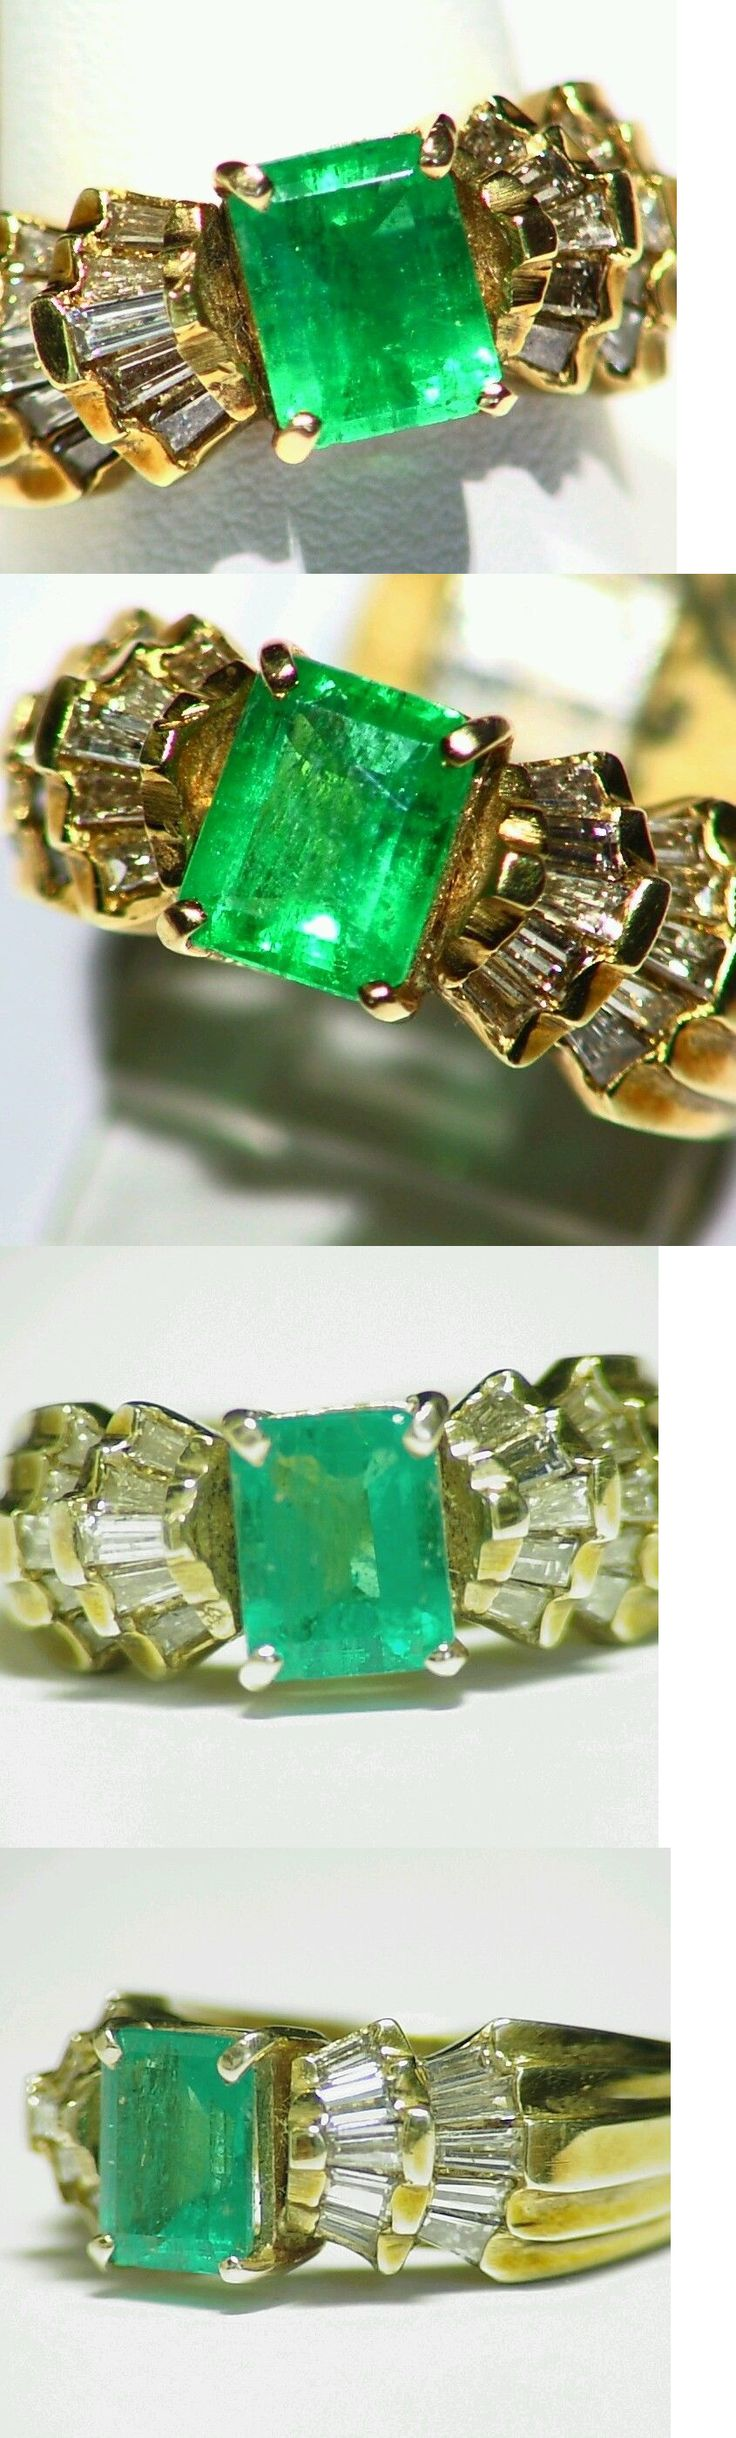 Rings 164983: 2.41Ct 14K Gold Natural Colombian Emerald White Diamond Vintage Engagement Ring -> BUY IT NOW ONLY: $1711 on eBay!